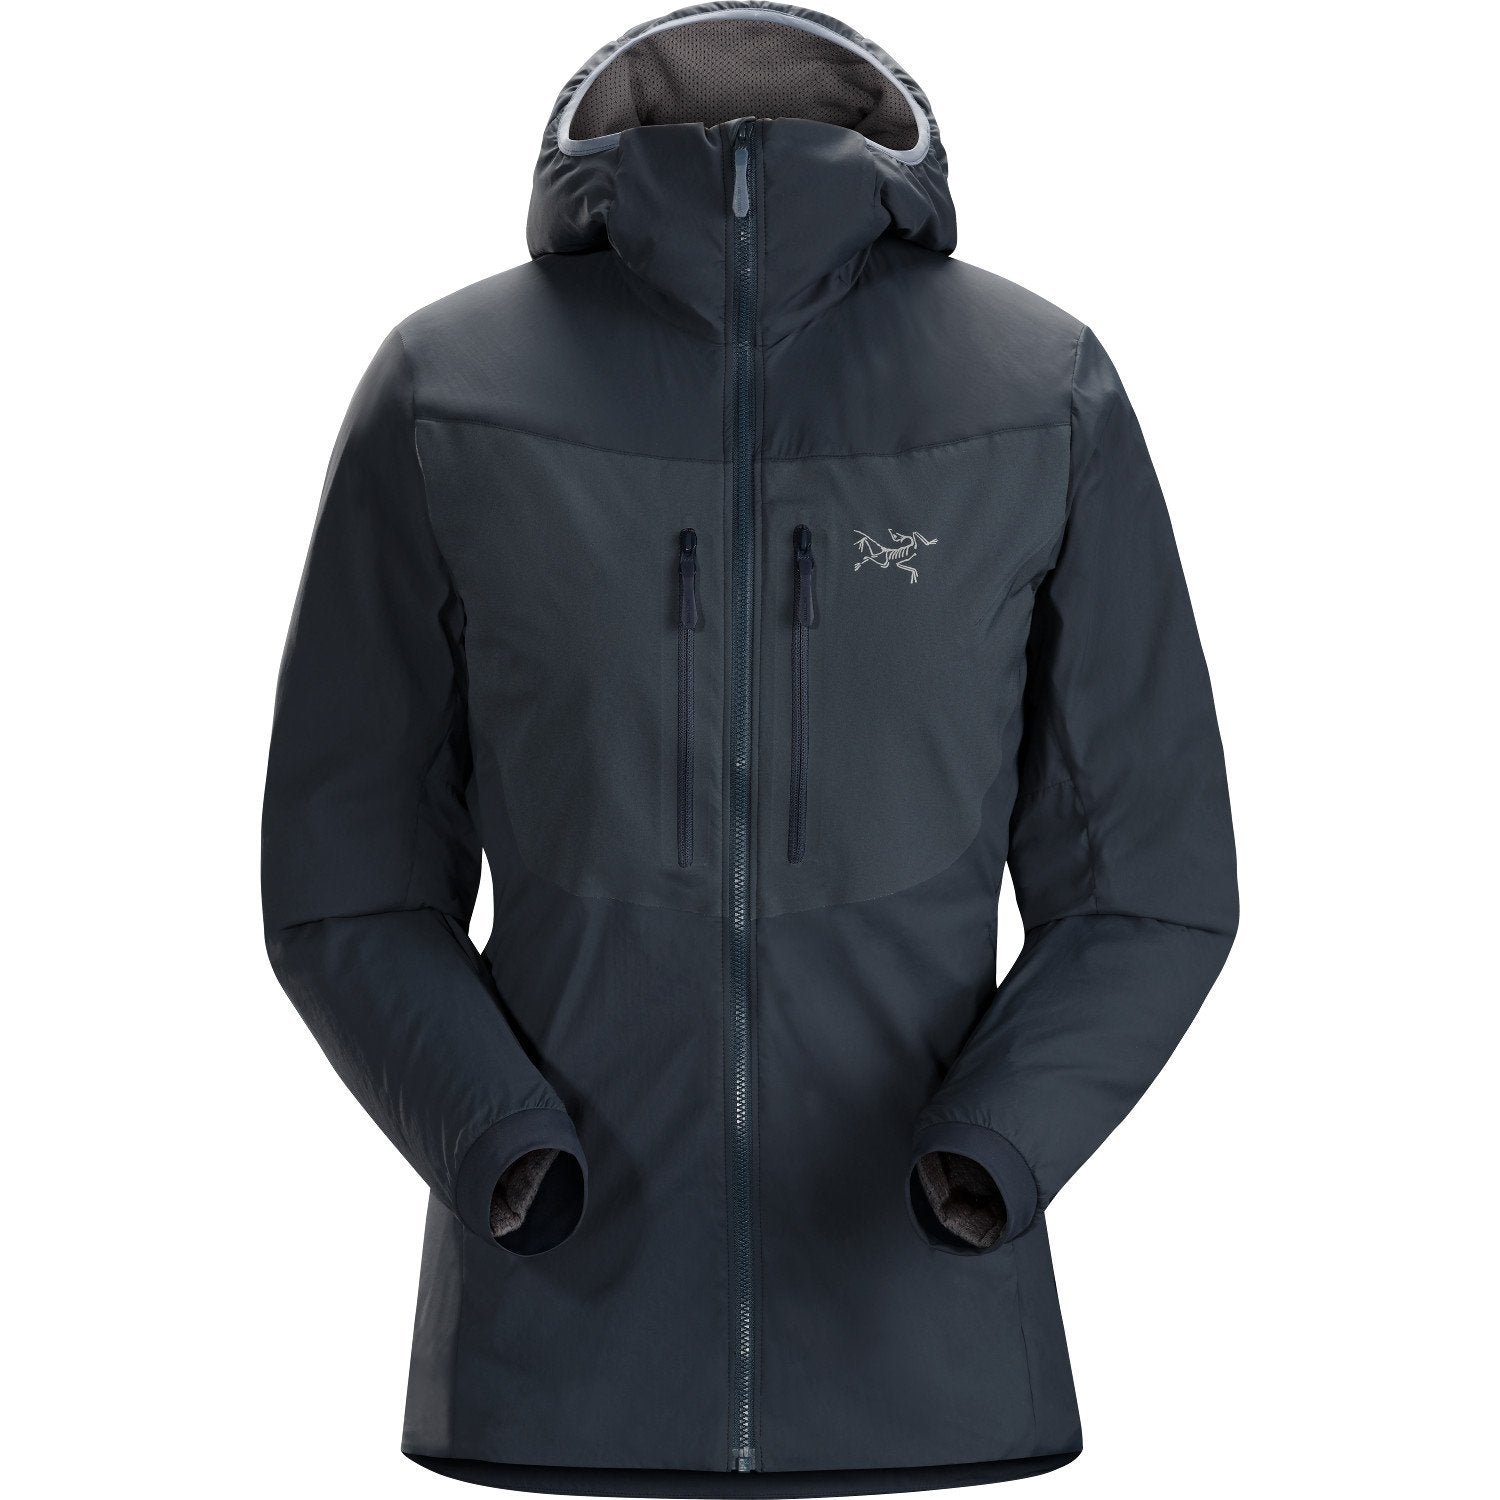 ArcTeryx Proton FL Women's Hoody in Black